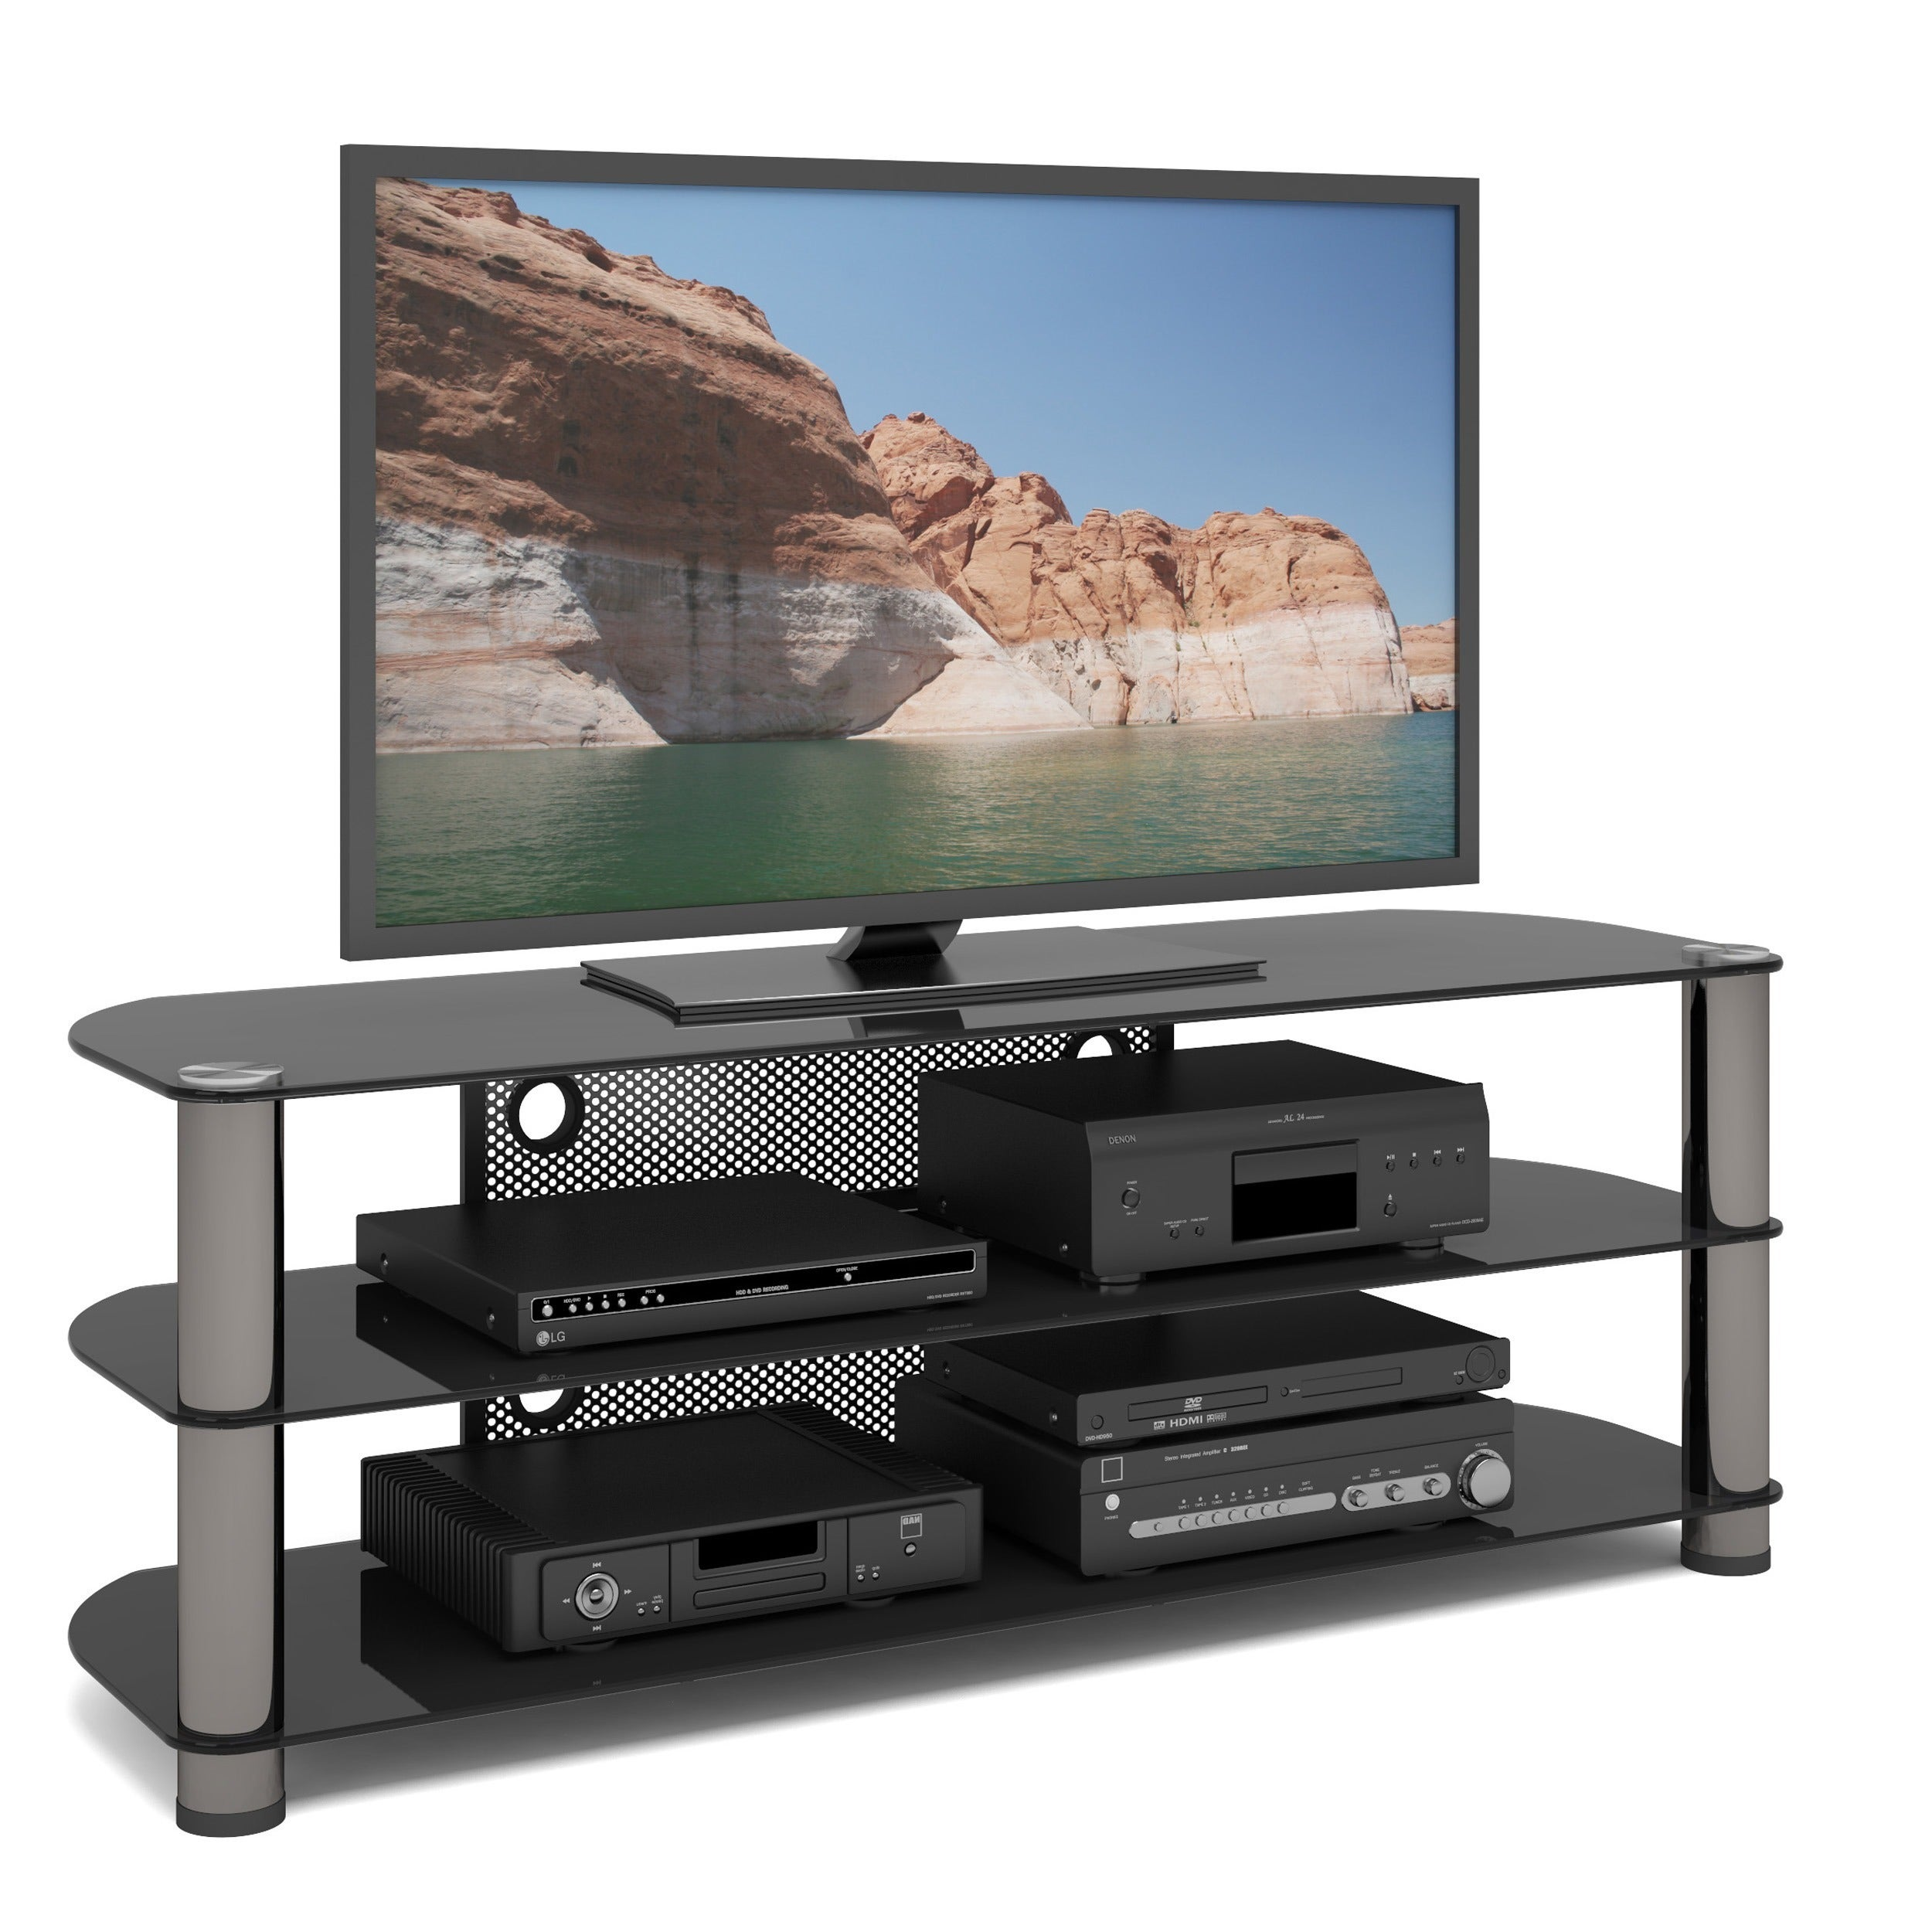 units images wall stands pedestal with centers entertainment tv inspirational screens buy of design home for new screen tvs best flat stand